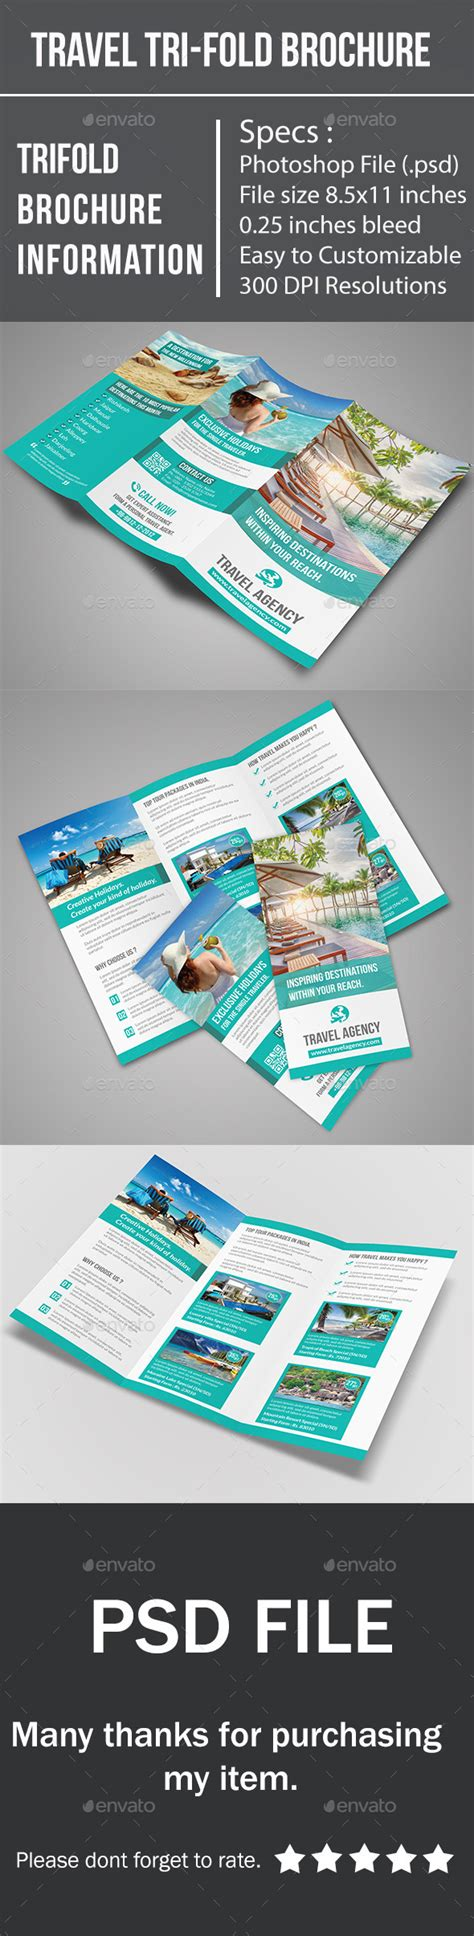 Travel Brochure Template 3 Fold by Travel Tri Fold Brochure By Buntichauhan123 Graphicriver